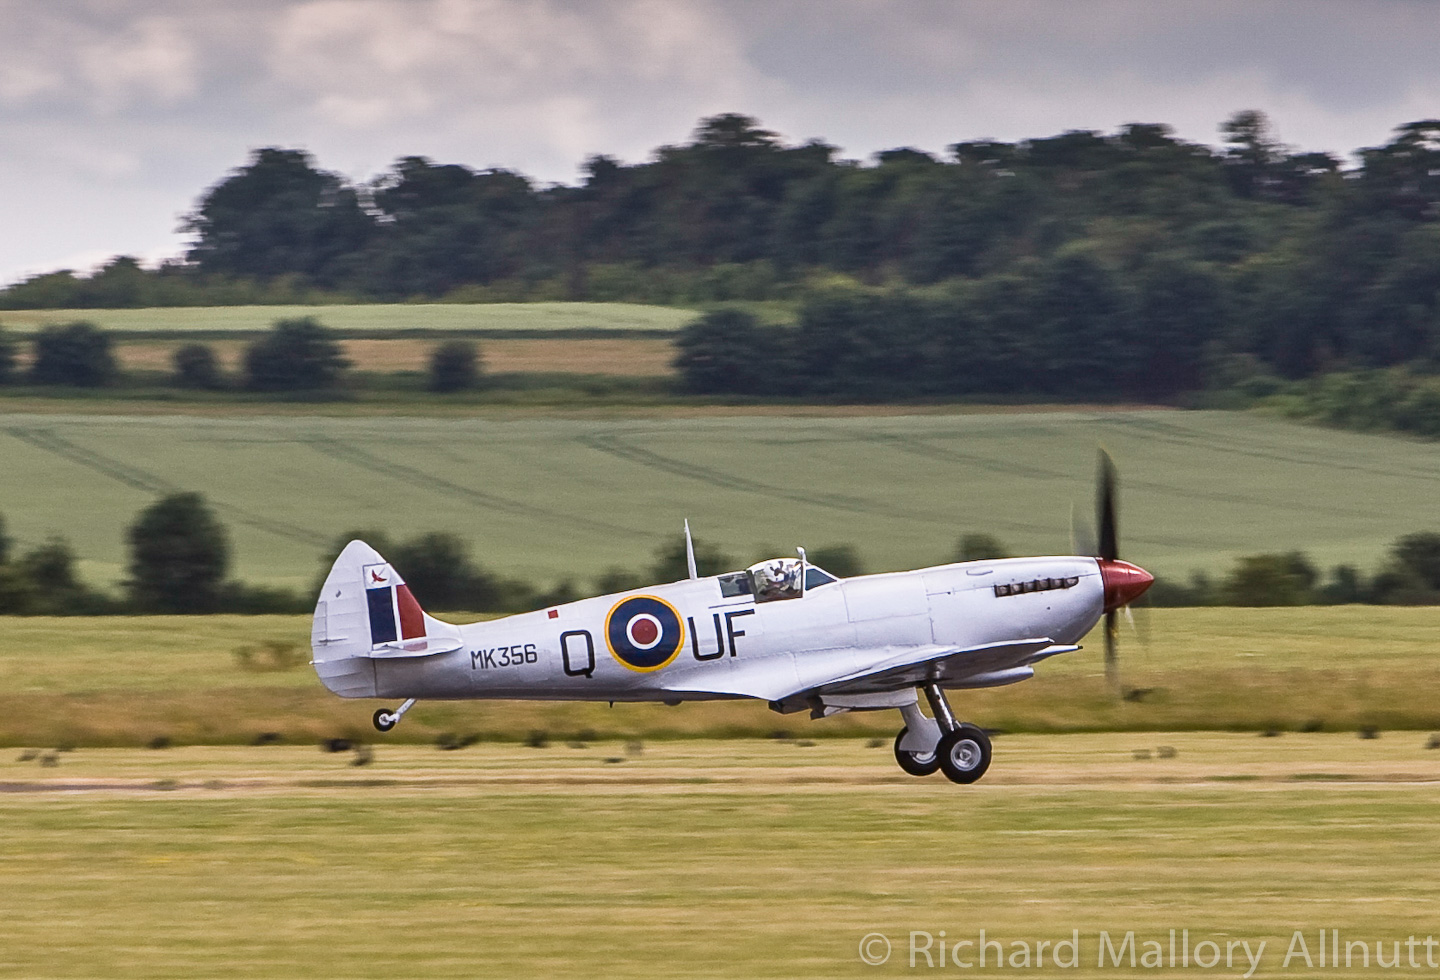 The Battle of Britain Memorial Flight's Spitfire Mk.IXe MK356 taking off at Duxford. (photo by Richard Mallory Allnutt)